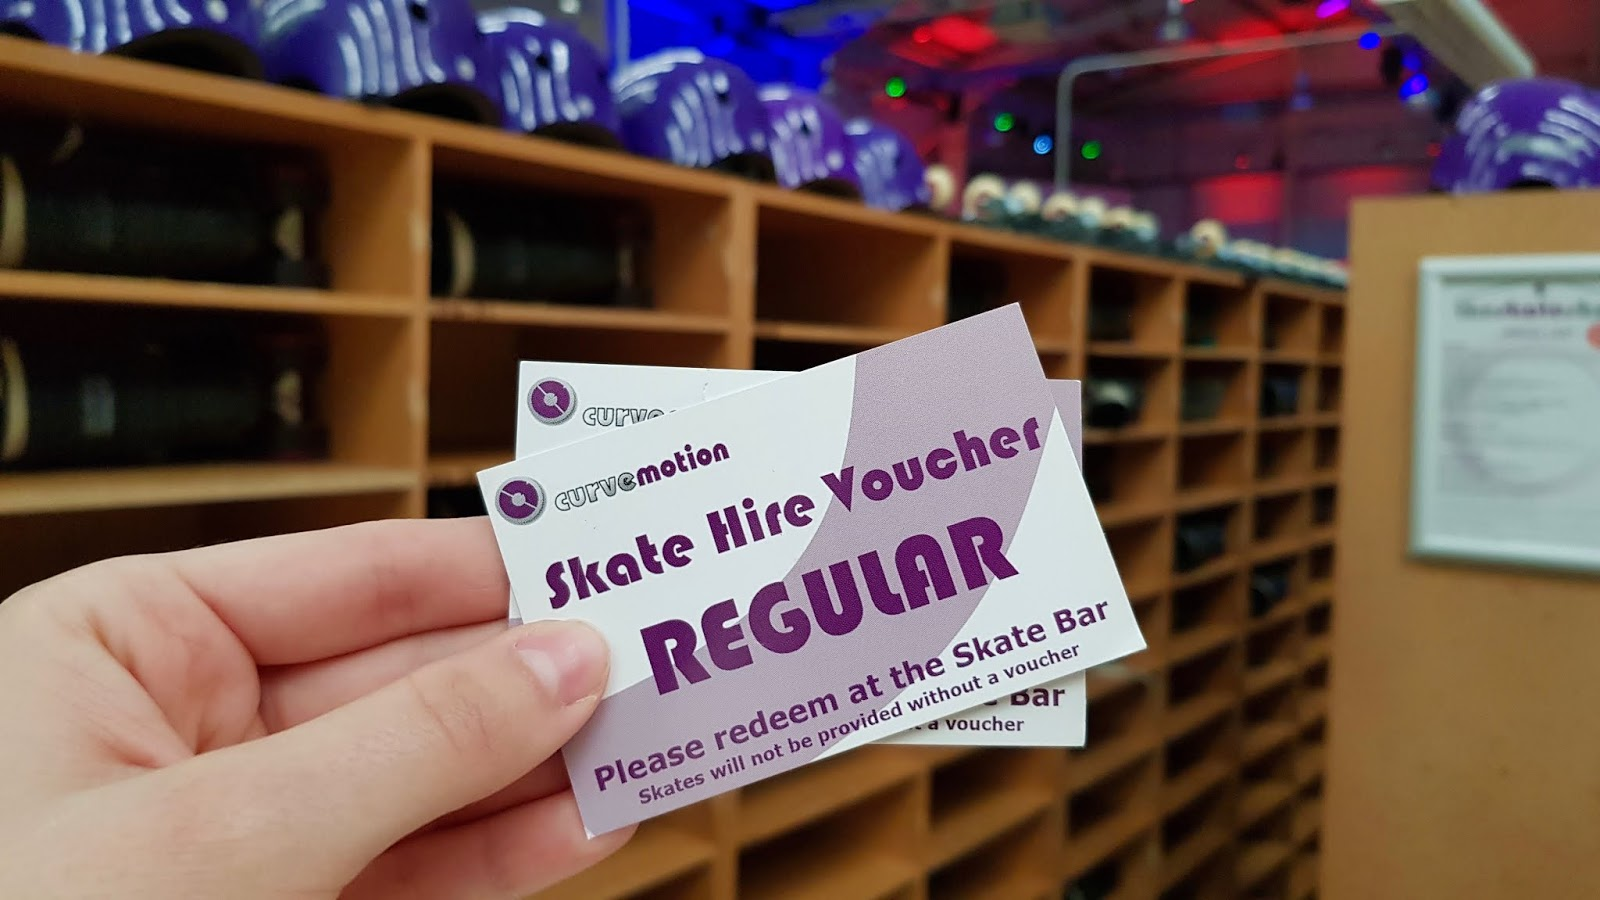 A close up of CurveMotion skate hire tokens, with racks of skates in the background